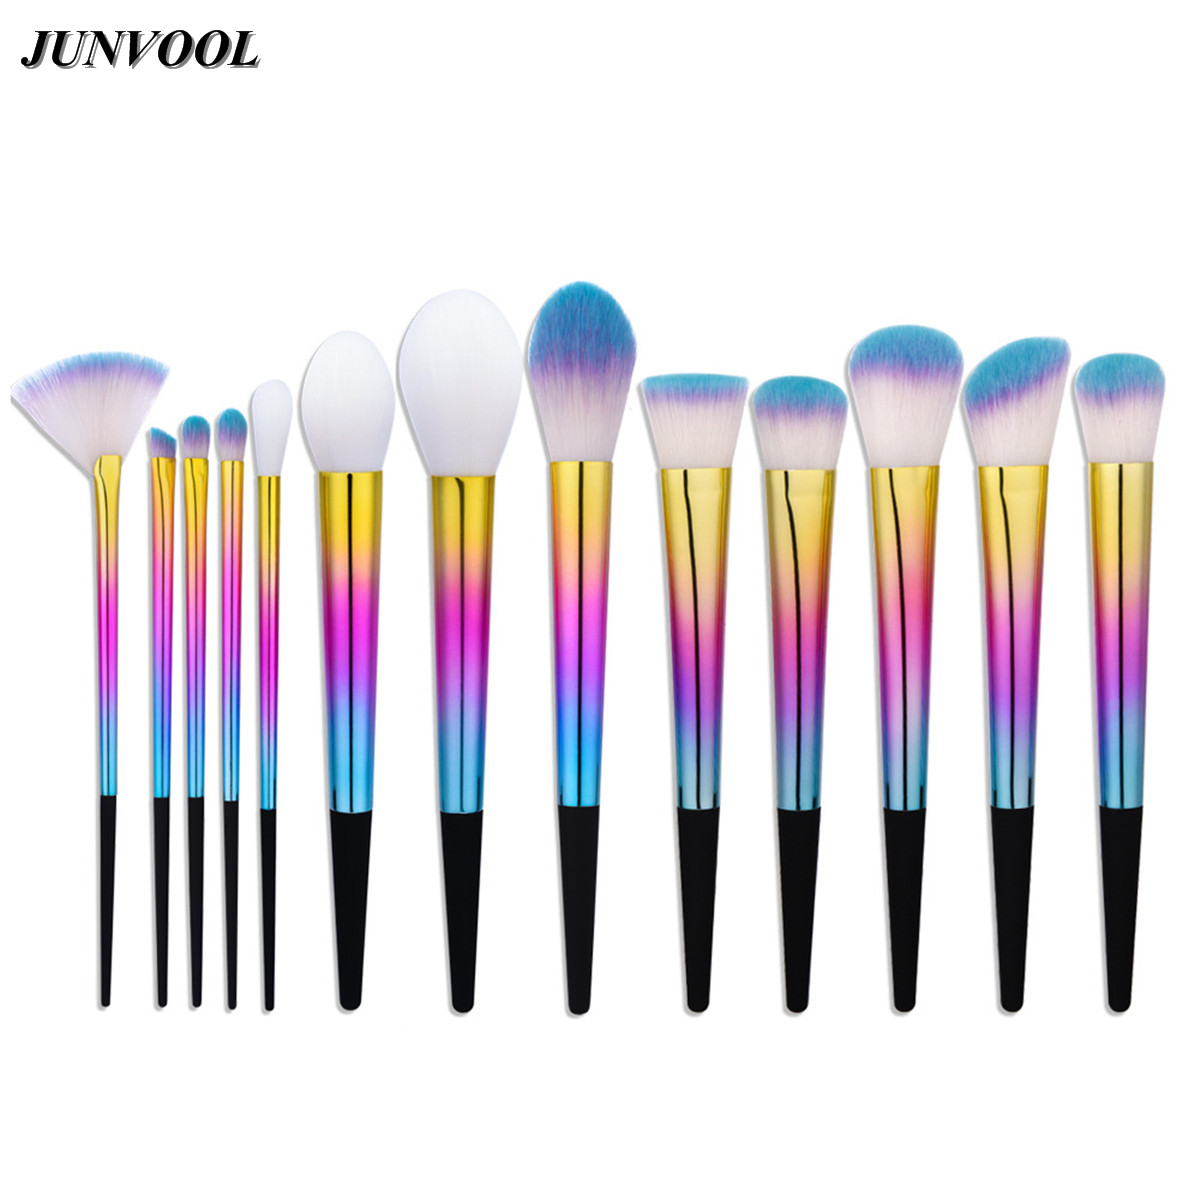 13Pcs Rainbow Makeup Brushes Set Kit Professional Foundation Eyeshadow Lip Fan Brush Tool Beauty Cosmetic Tools Pincel Maquiagem peny skateboard wheels longboard 22 retro mini skate trucks fish long board cruiser complete tablas de skate pp women men skull